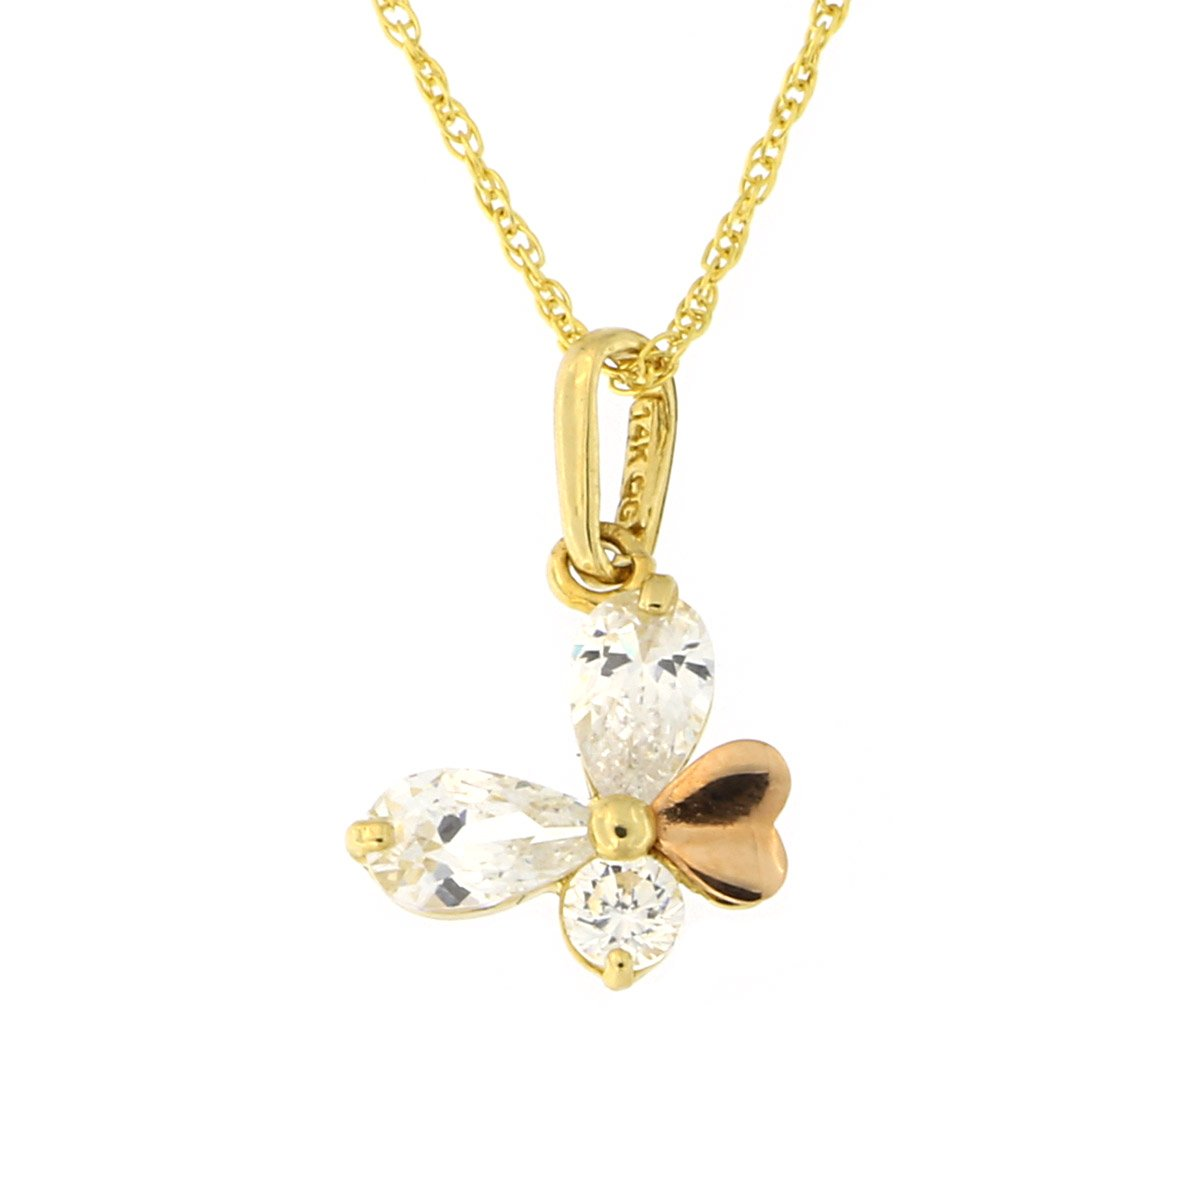 Beauniq 14k Yellow and Rose Gold Cubic Zirconia Butterfly Pendant Necklace